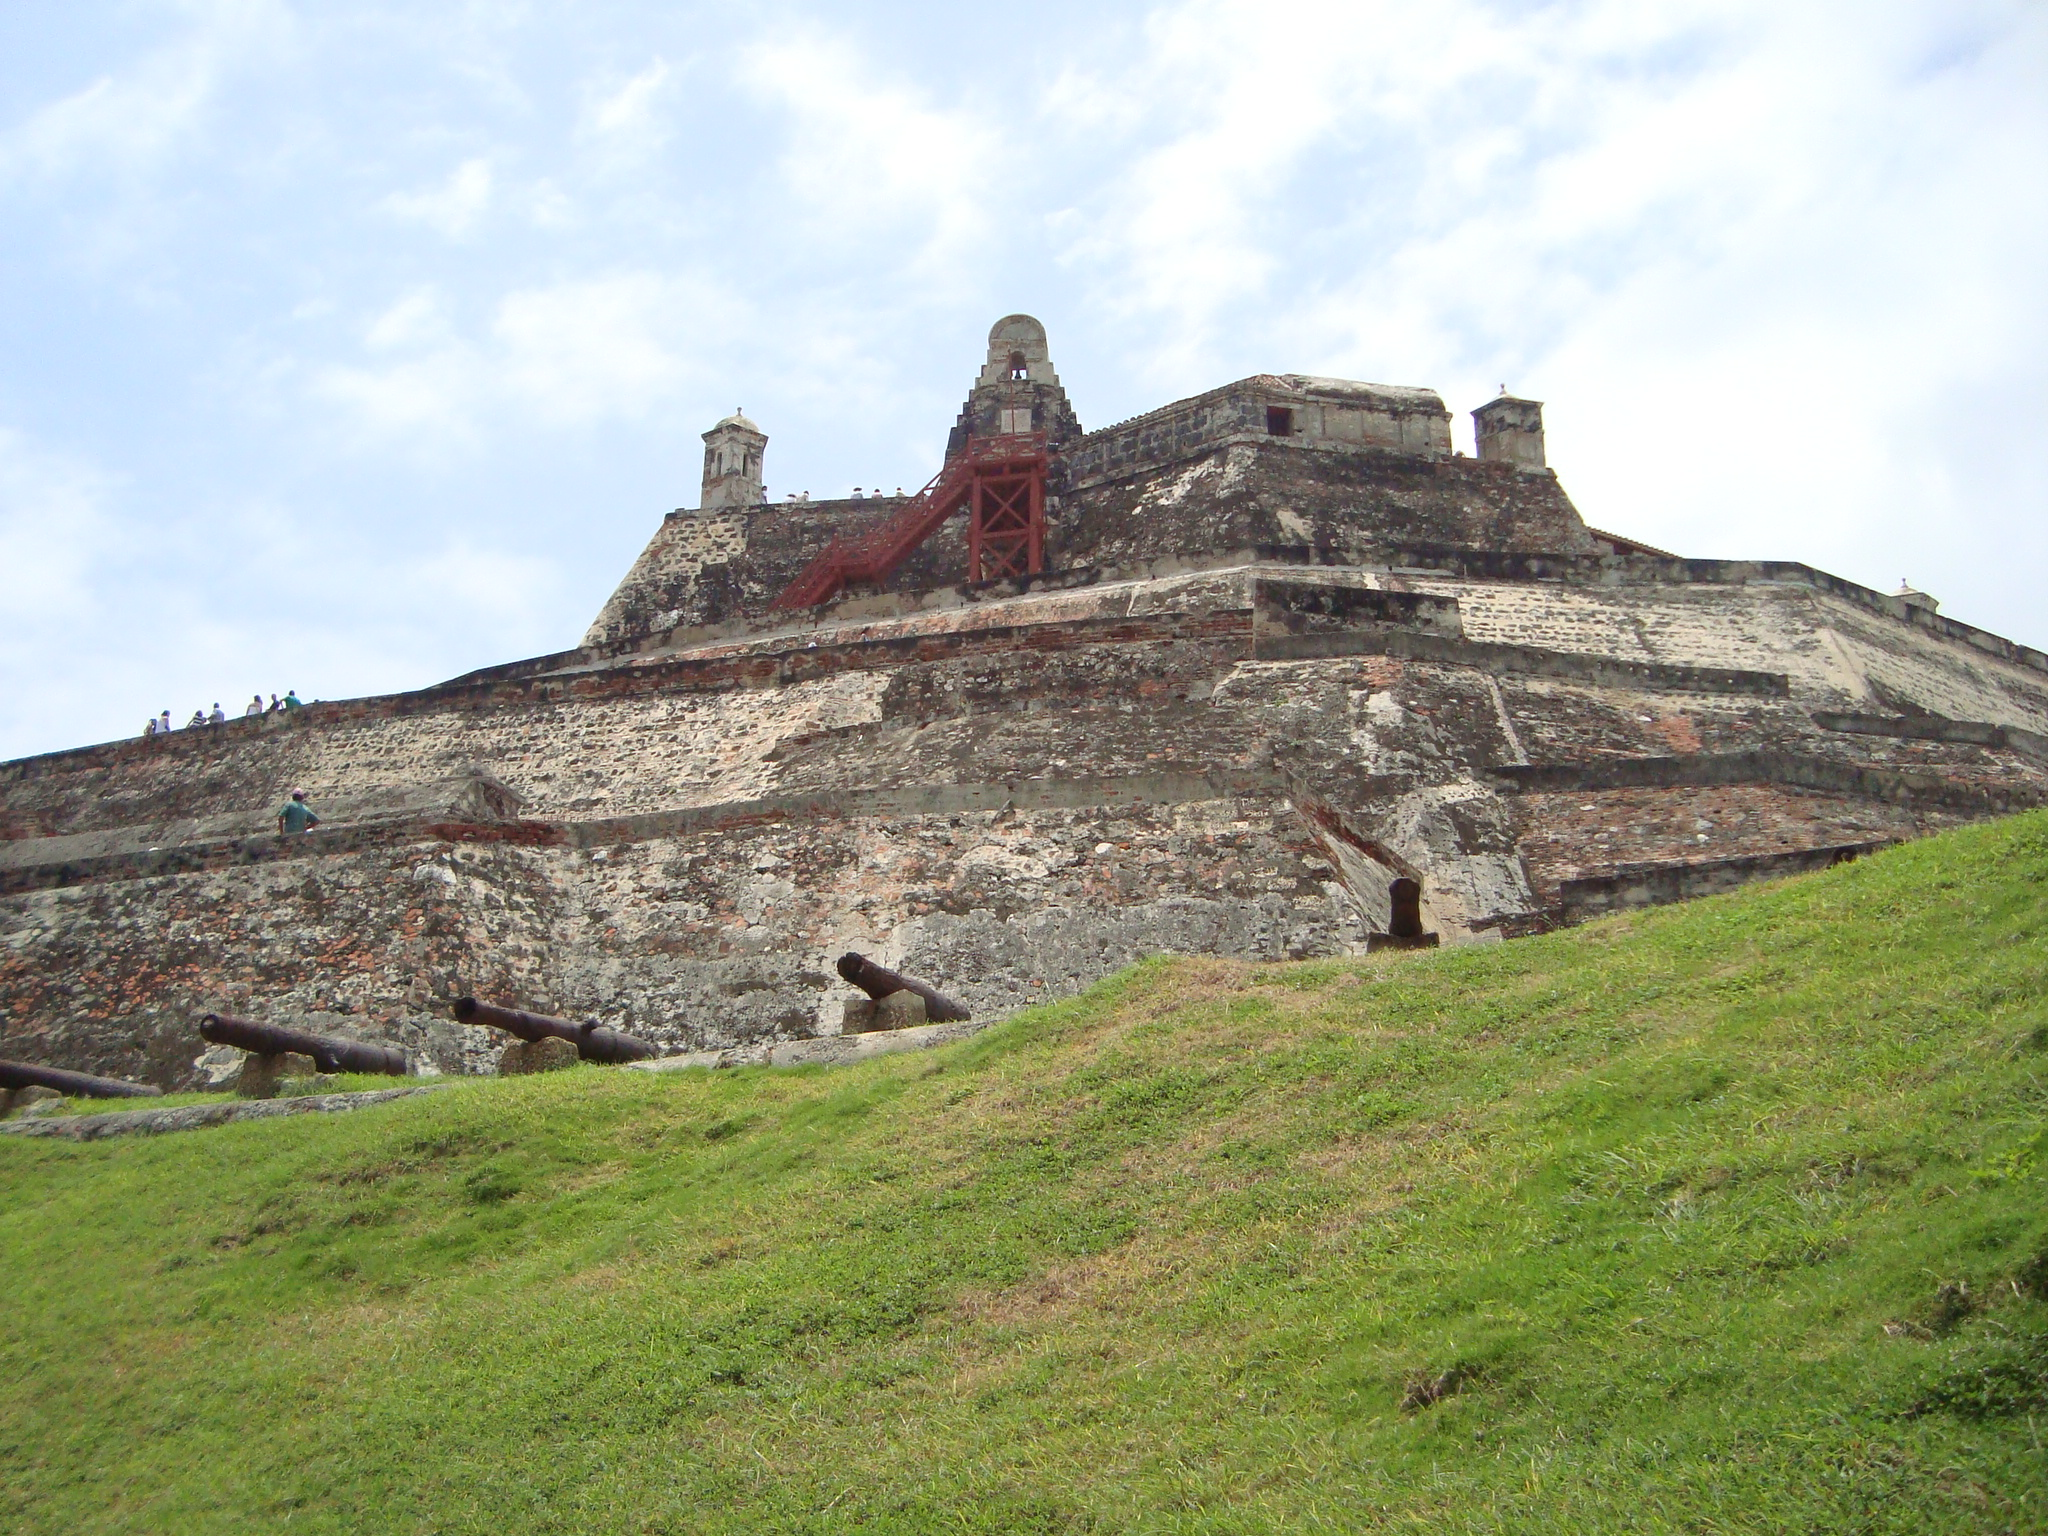 San Felipe de Barajas Fortress Cartagena de Indias. In 1741 the Spanish defeated a vast British invasion fleet and army from this fortress in present-day Colombia during the Battle of Cartagena de Indias.